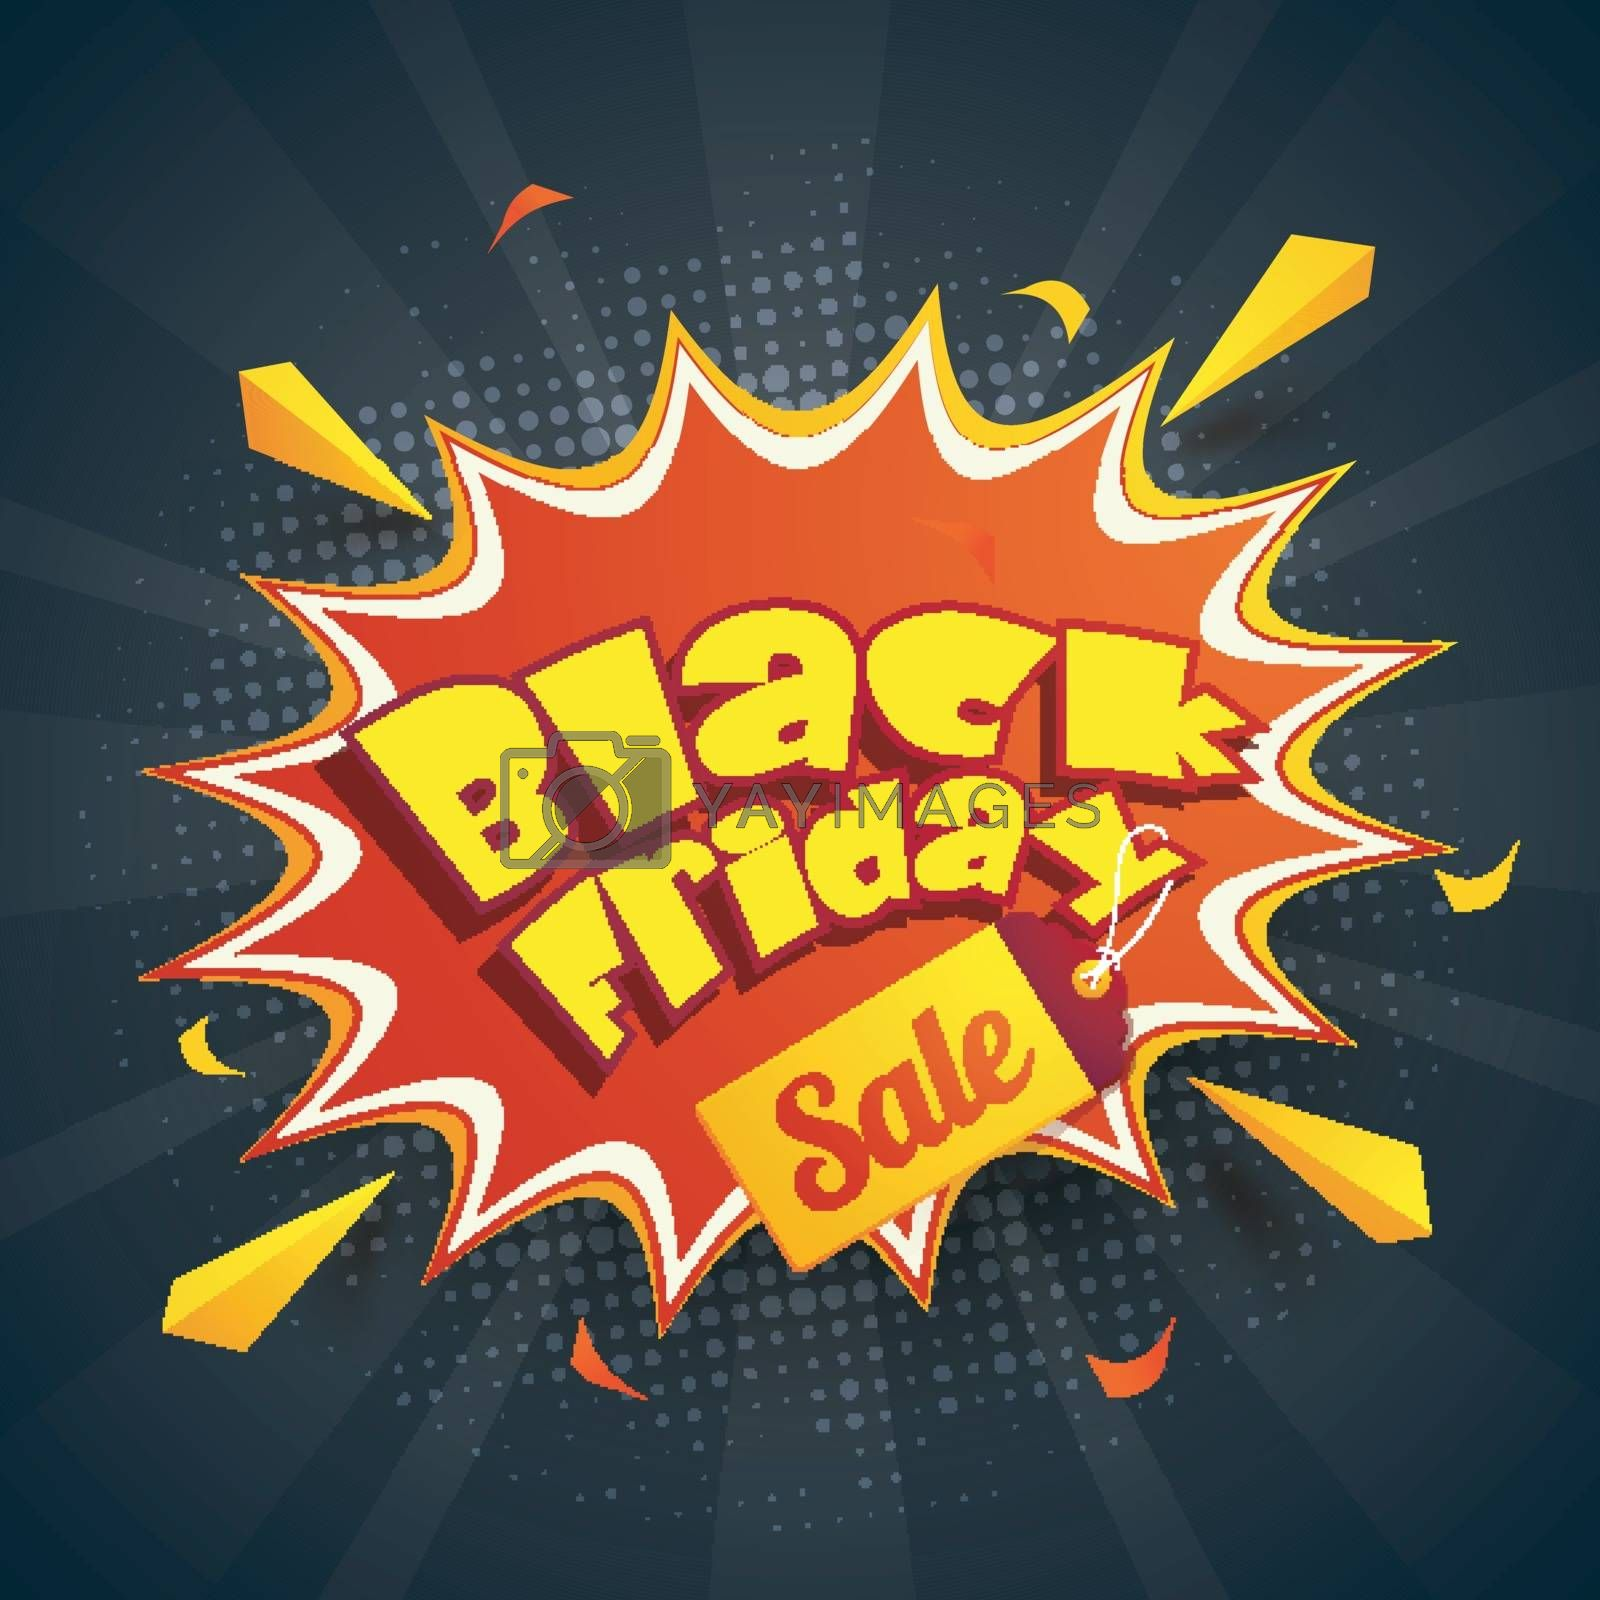 Pop art style poster design with yellow text Black Friday sale on black halftone background.